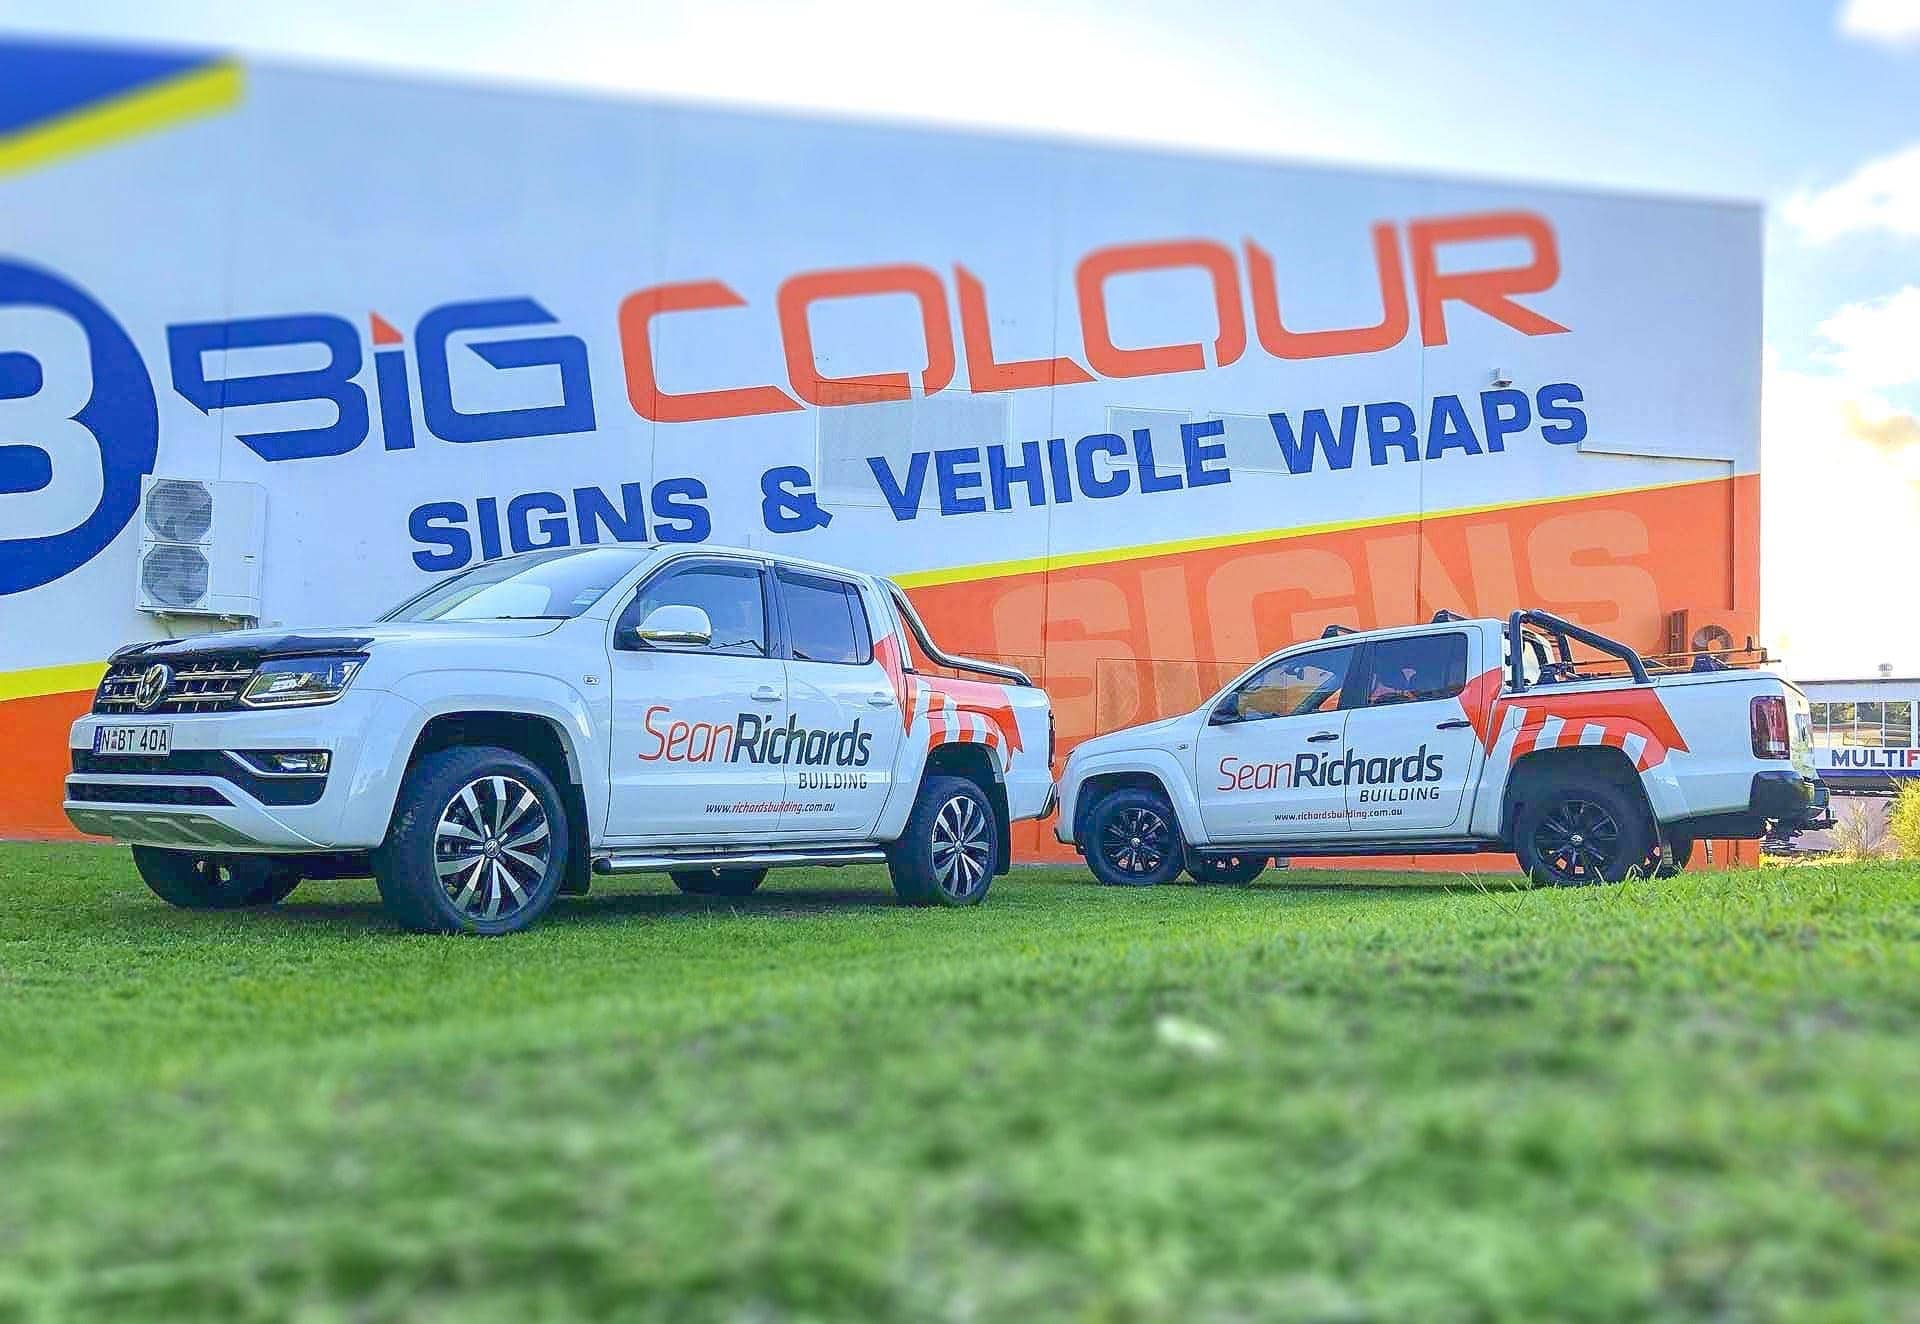 The advantages of vehicle wrapping